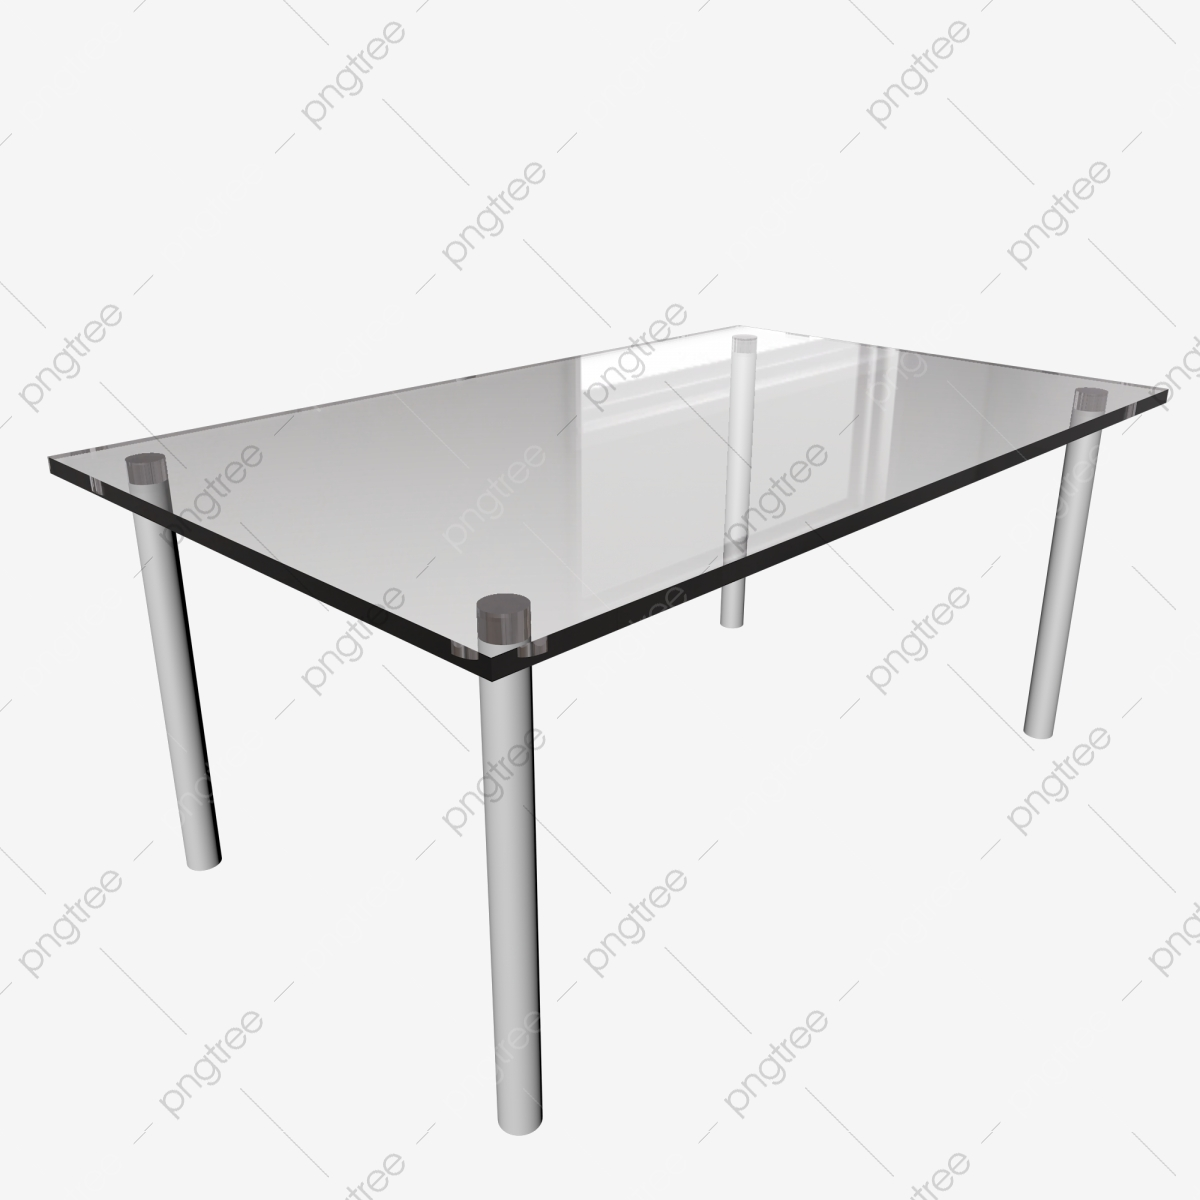 https pngtree com freepng glass coffee table 4570940 html